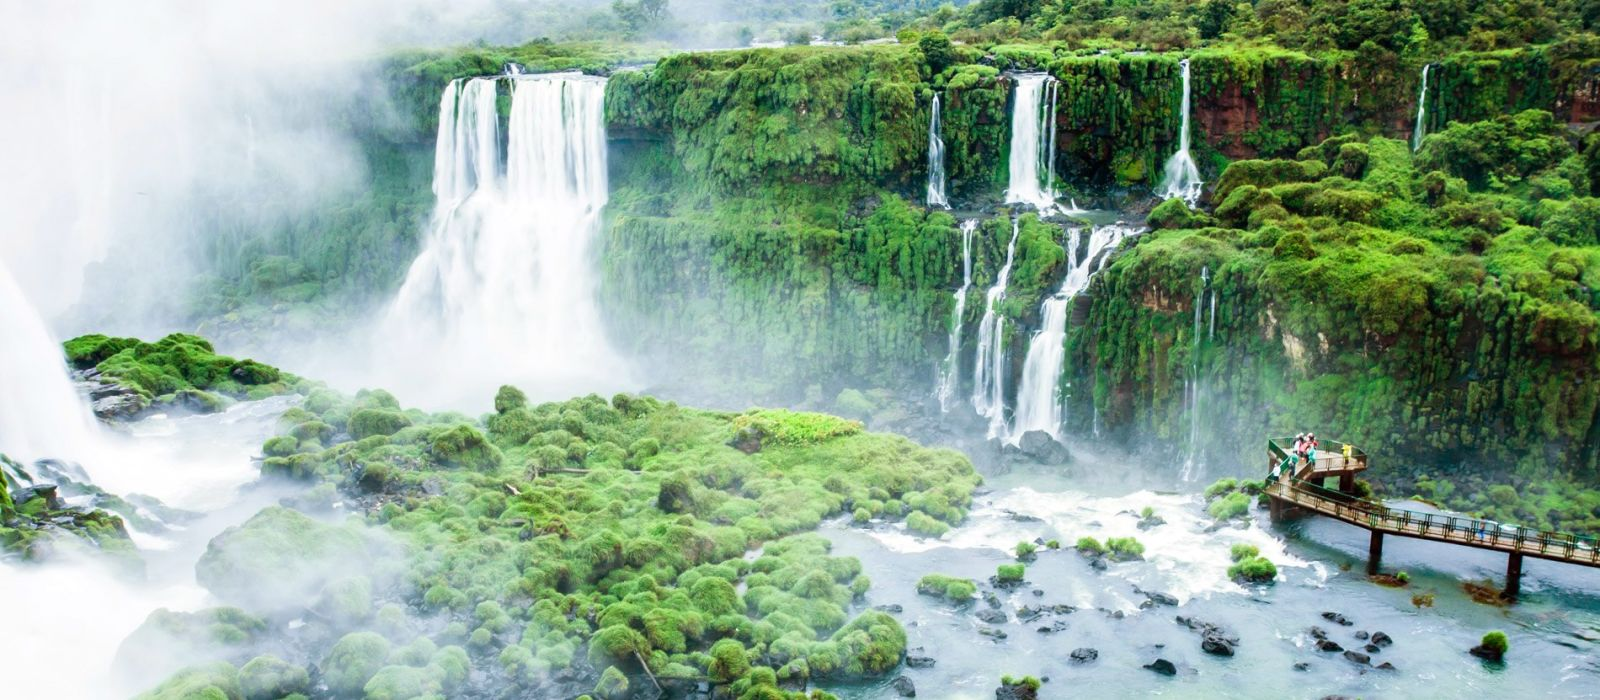 Brazil's Wildlife & Natural Wonders Tour Trip 1